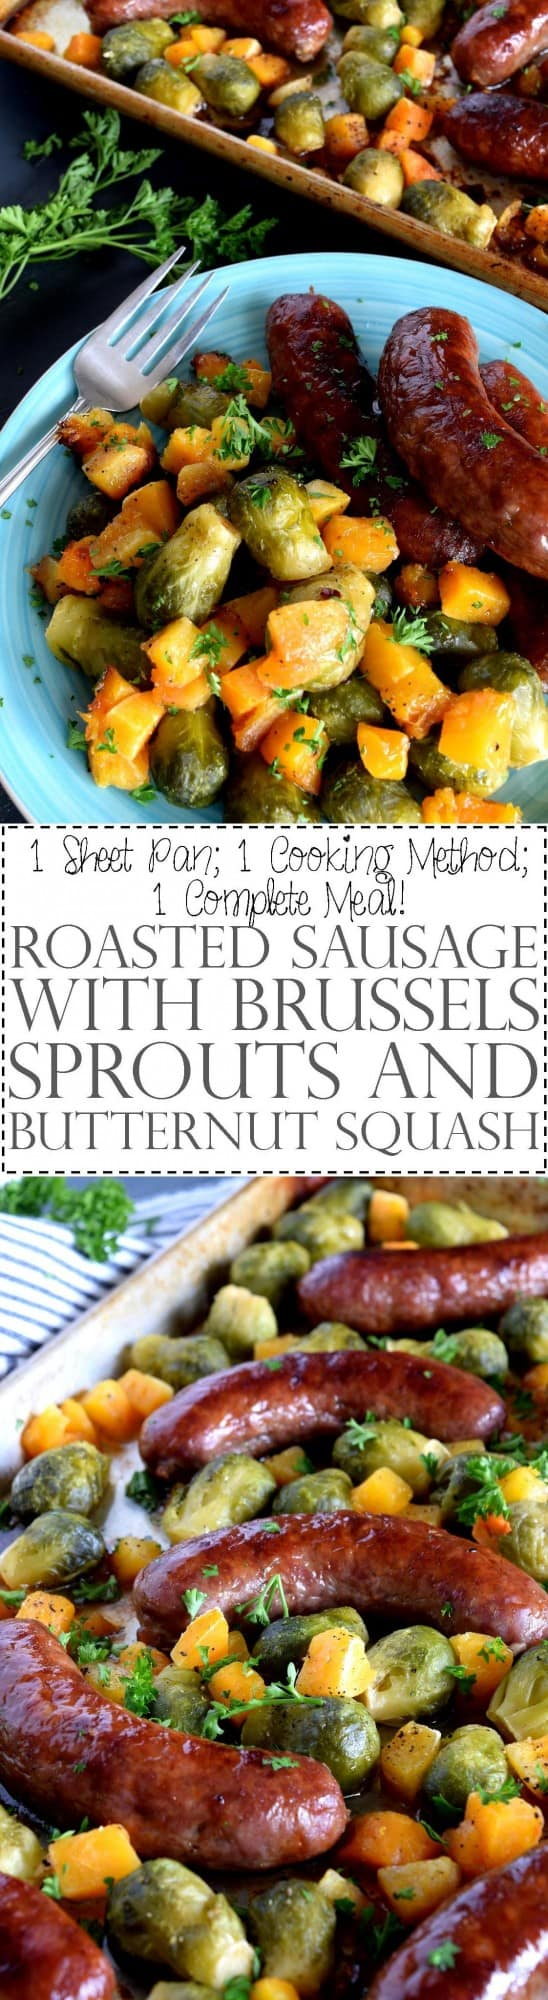 Roasted Sausage with Brussels Sprouts and Butternut Squash